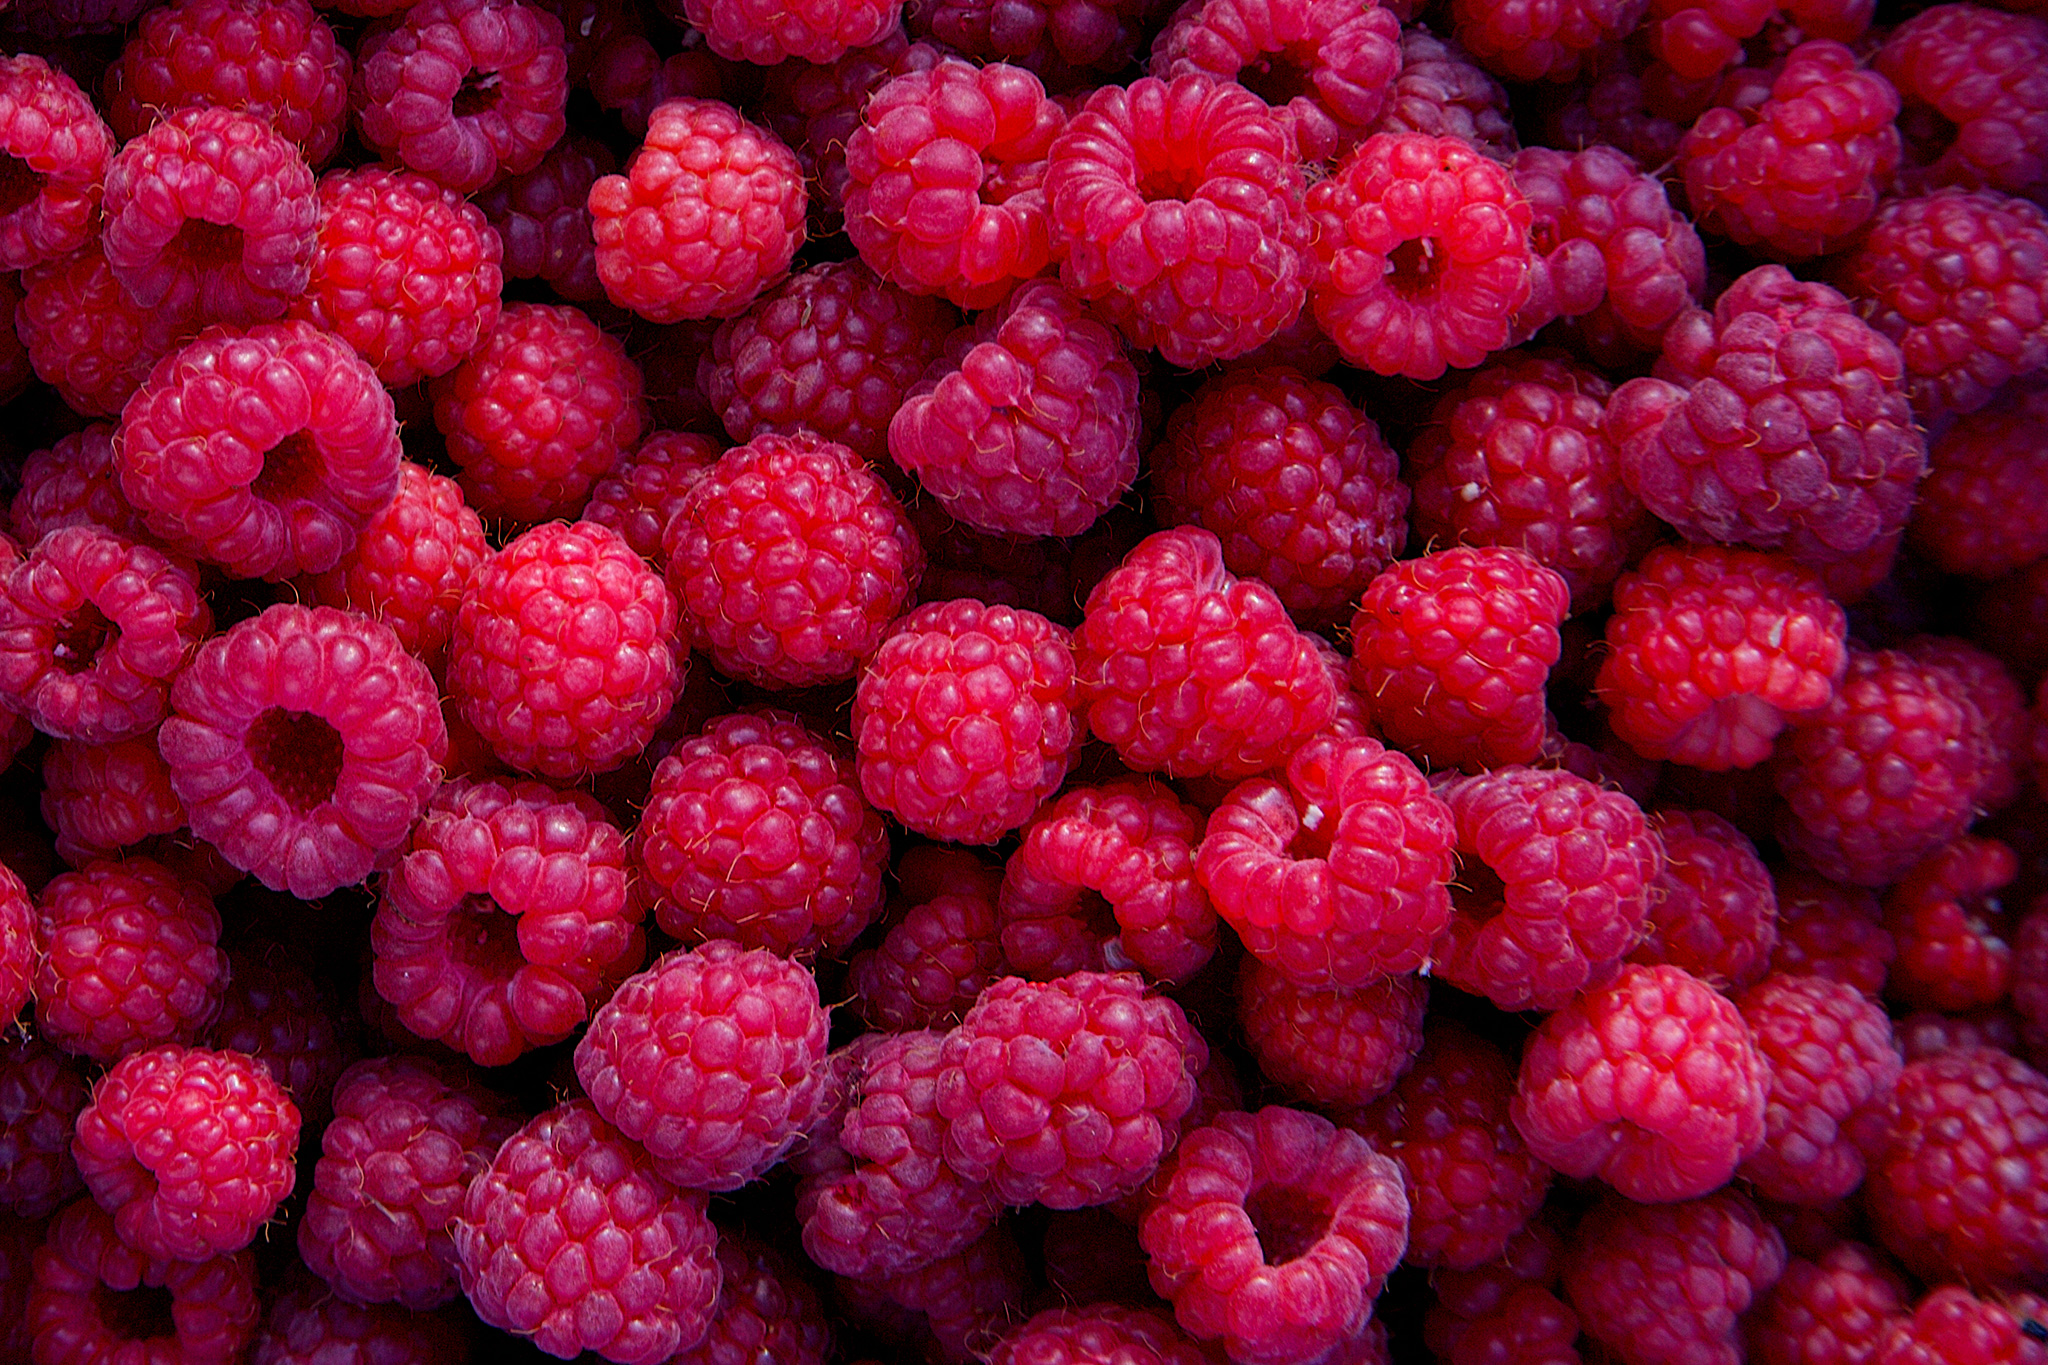 raspberries-high-in-vitamin-c-2